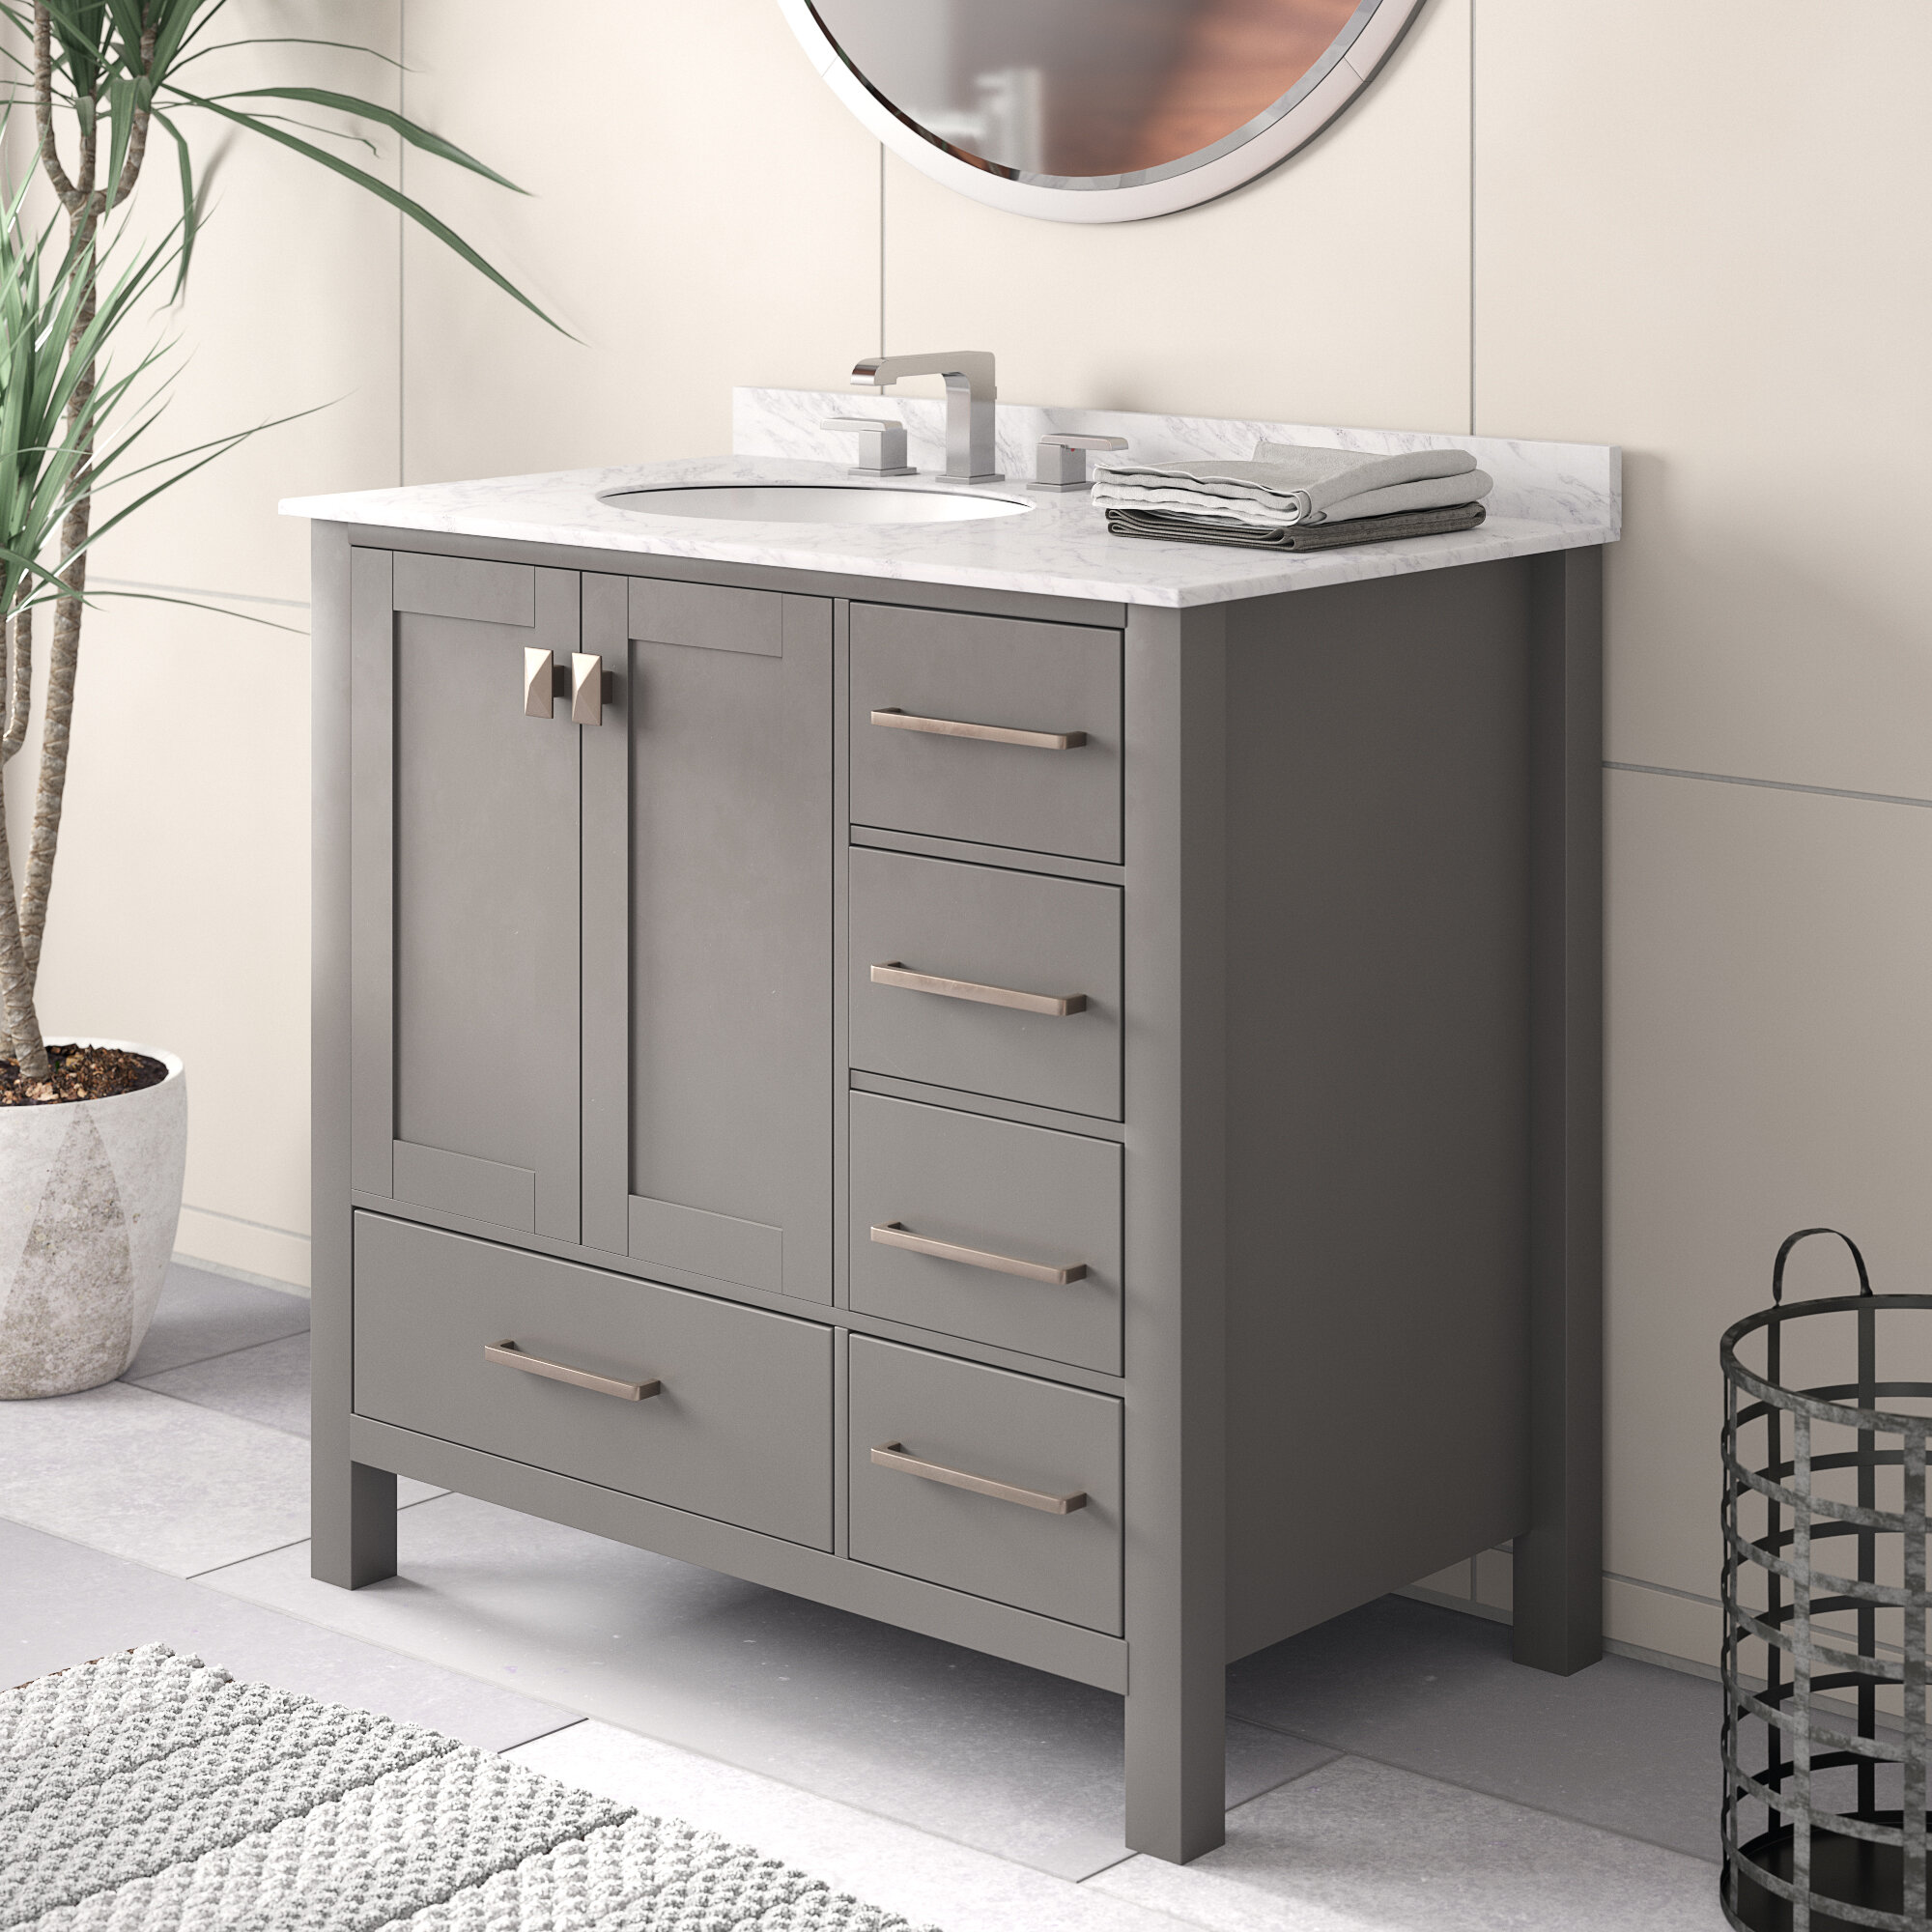 Brilliant Newtown 36 Single Bathroom Vanity Set Interior Design Ideas Grebswwsoteloinfo